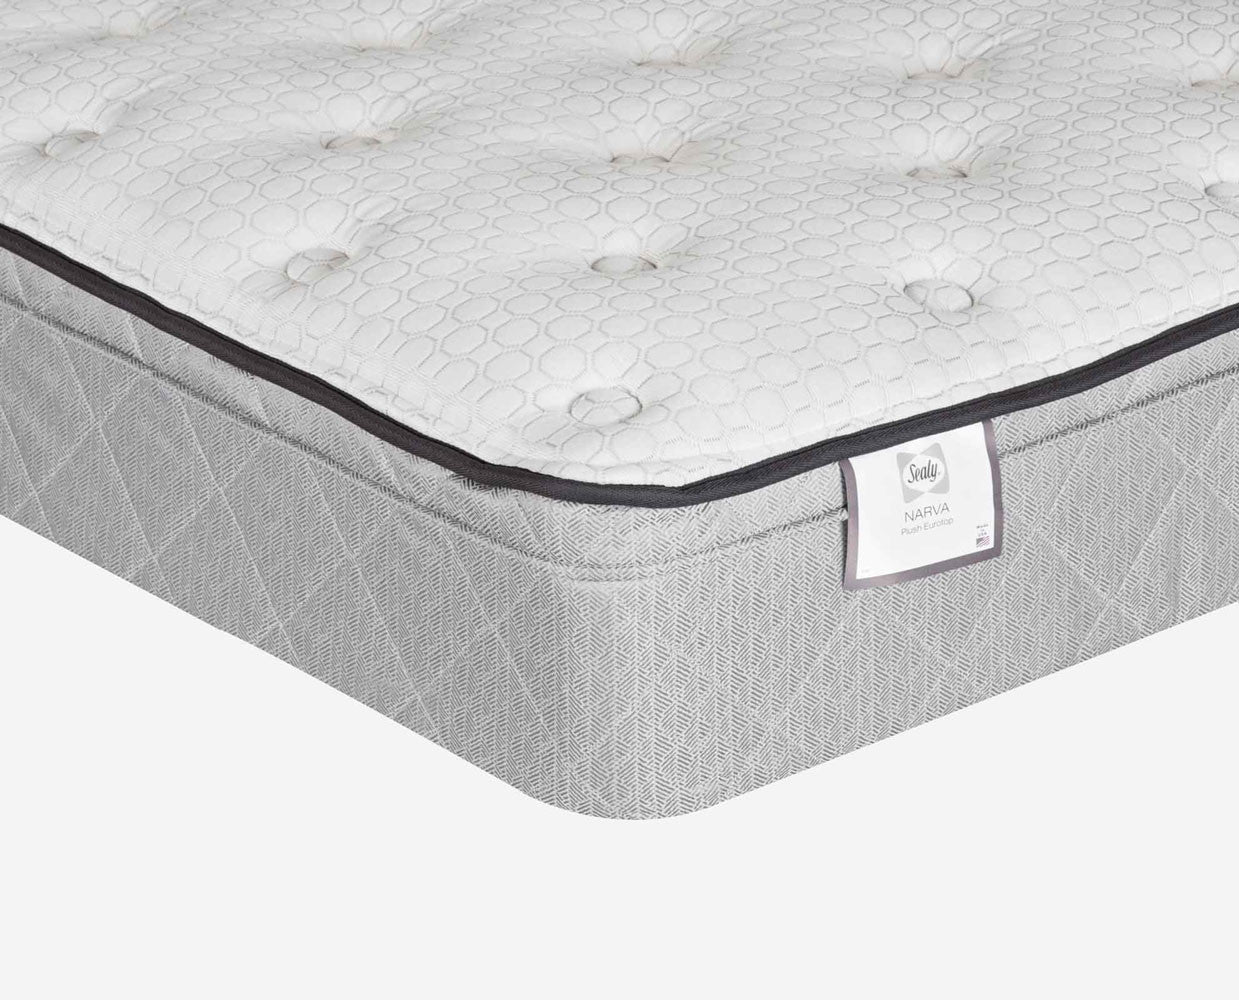 Breathable cozy mattress